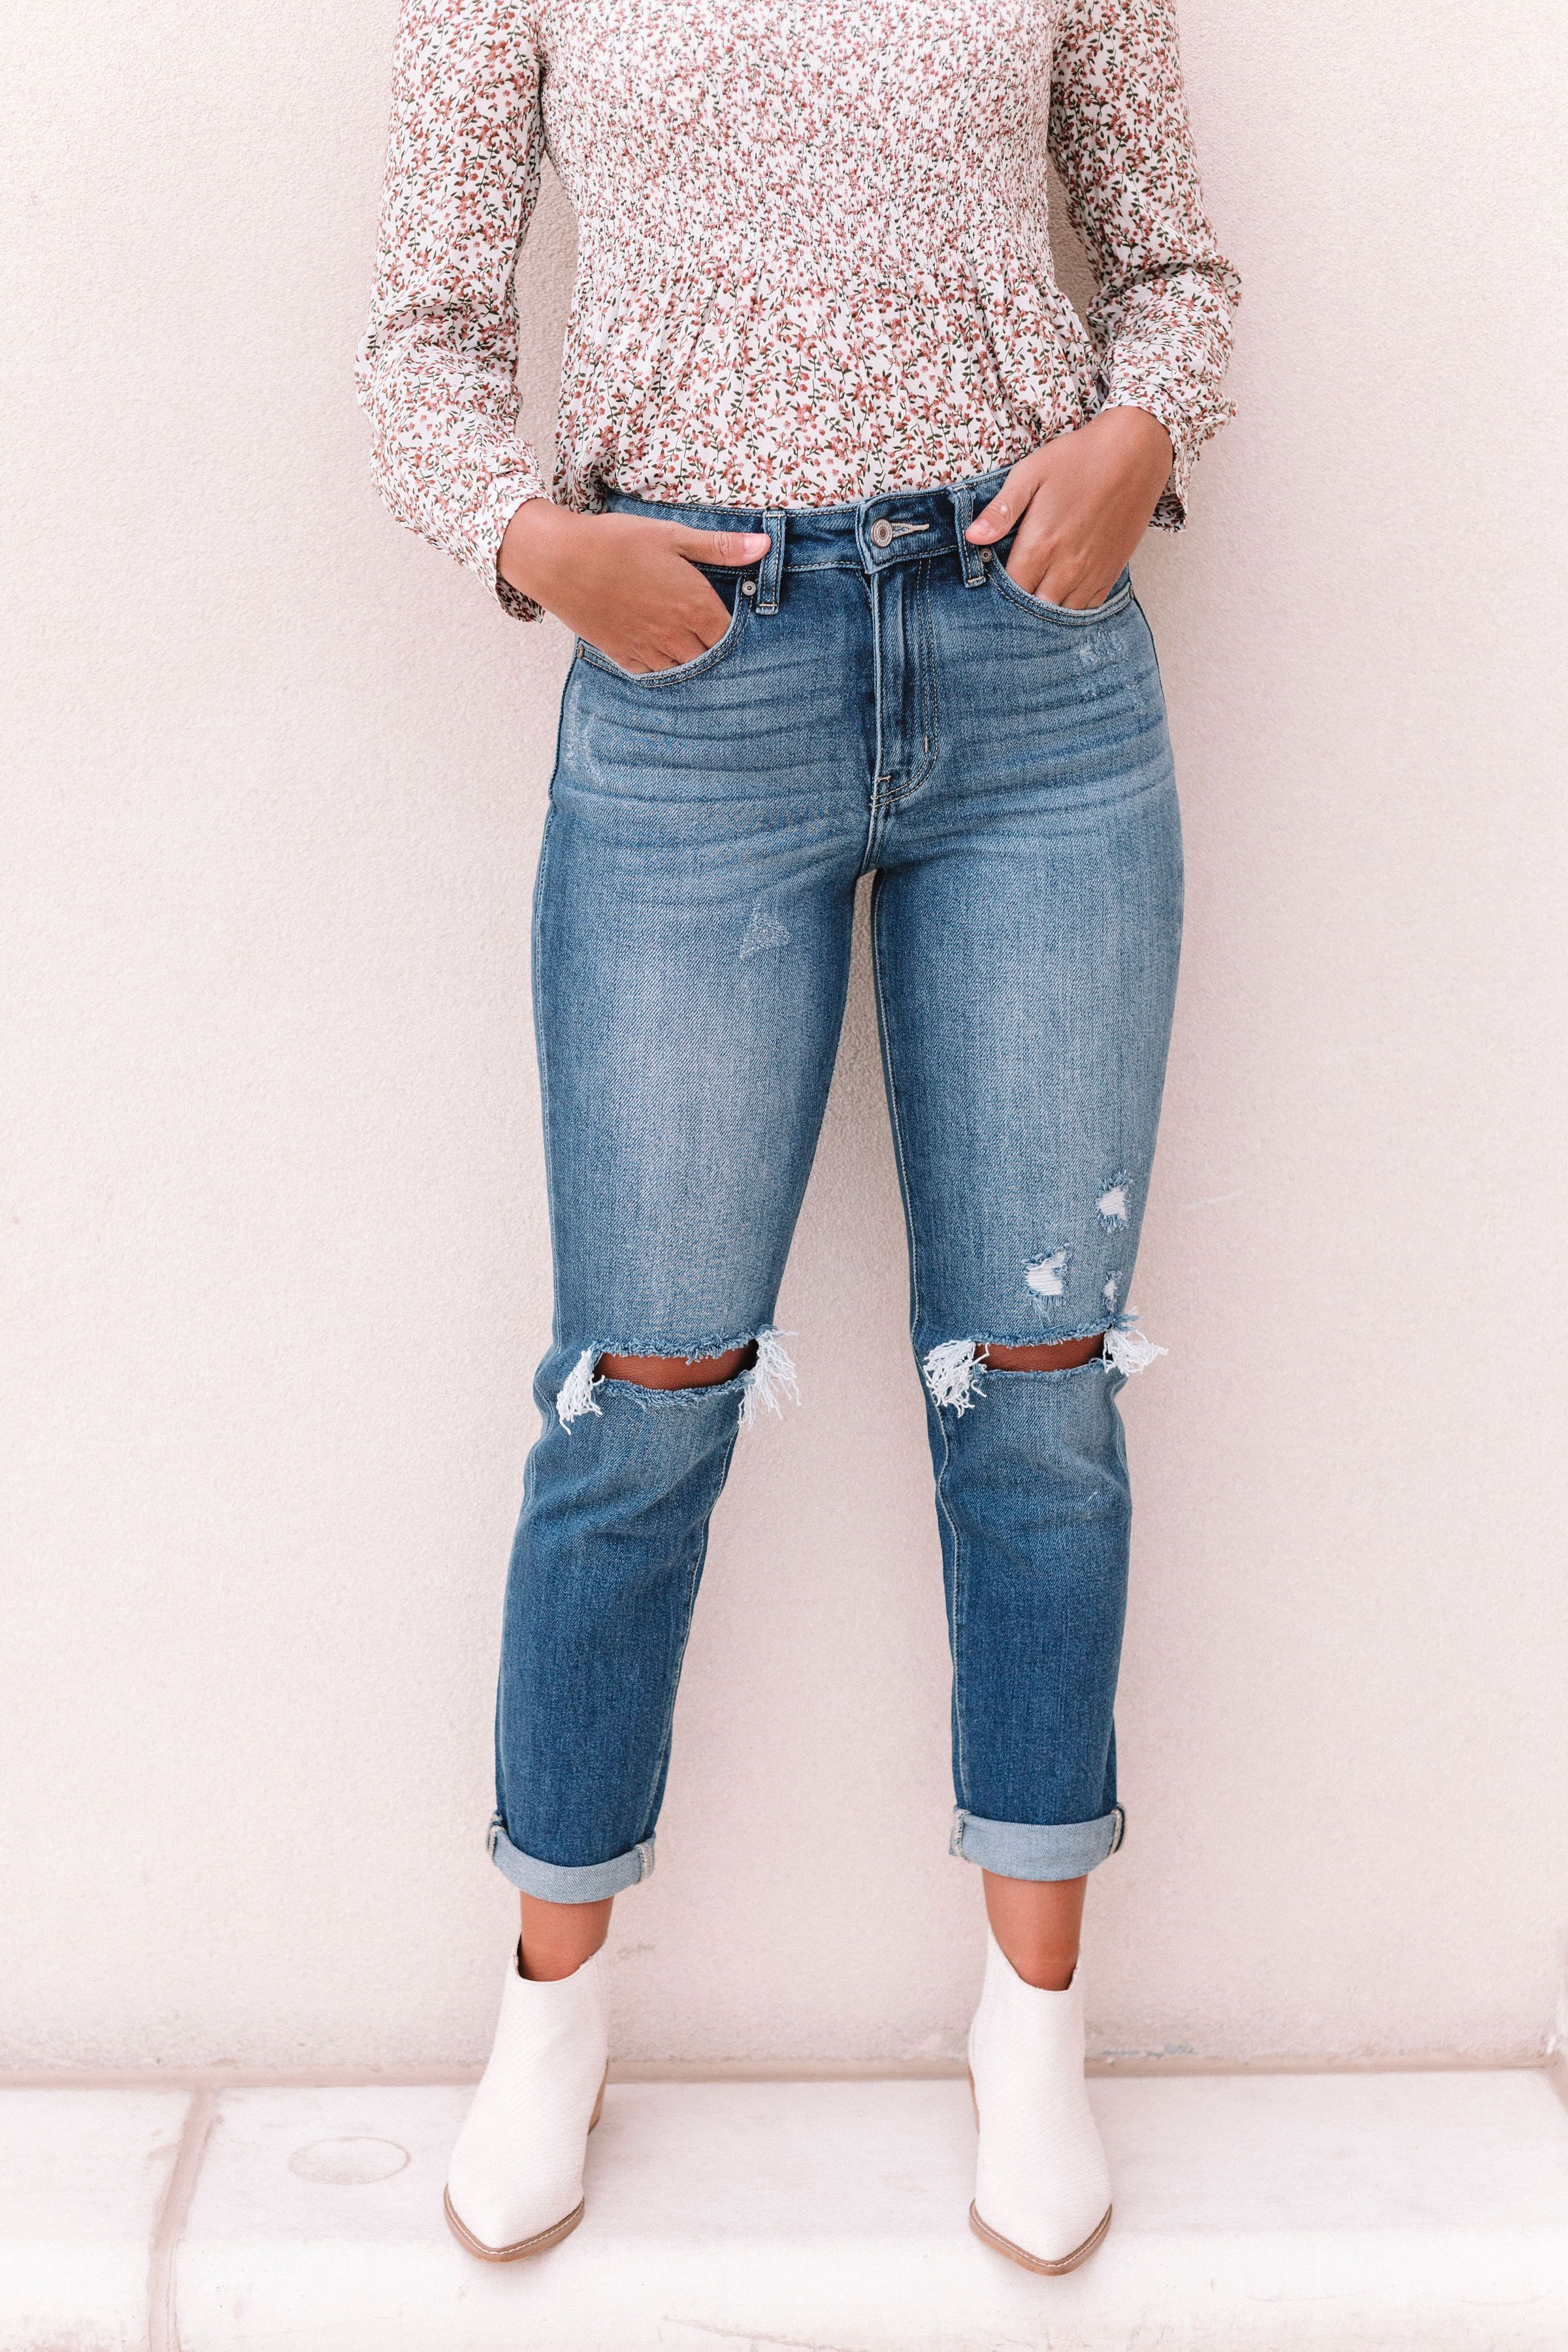 Kancan Ellie Jeans In 2021 Types Of Jeans How To Wear Jeans